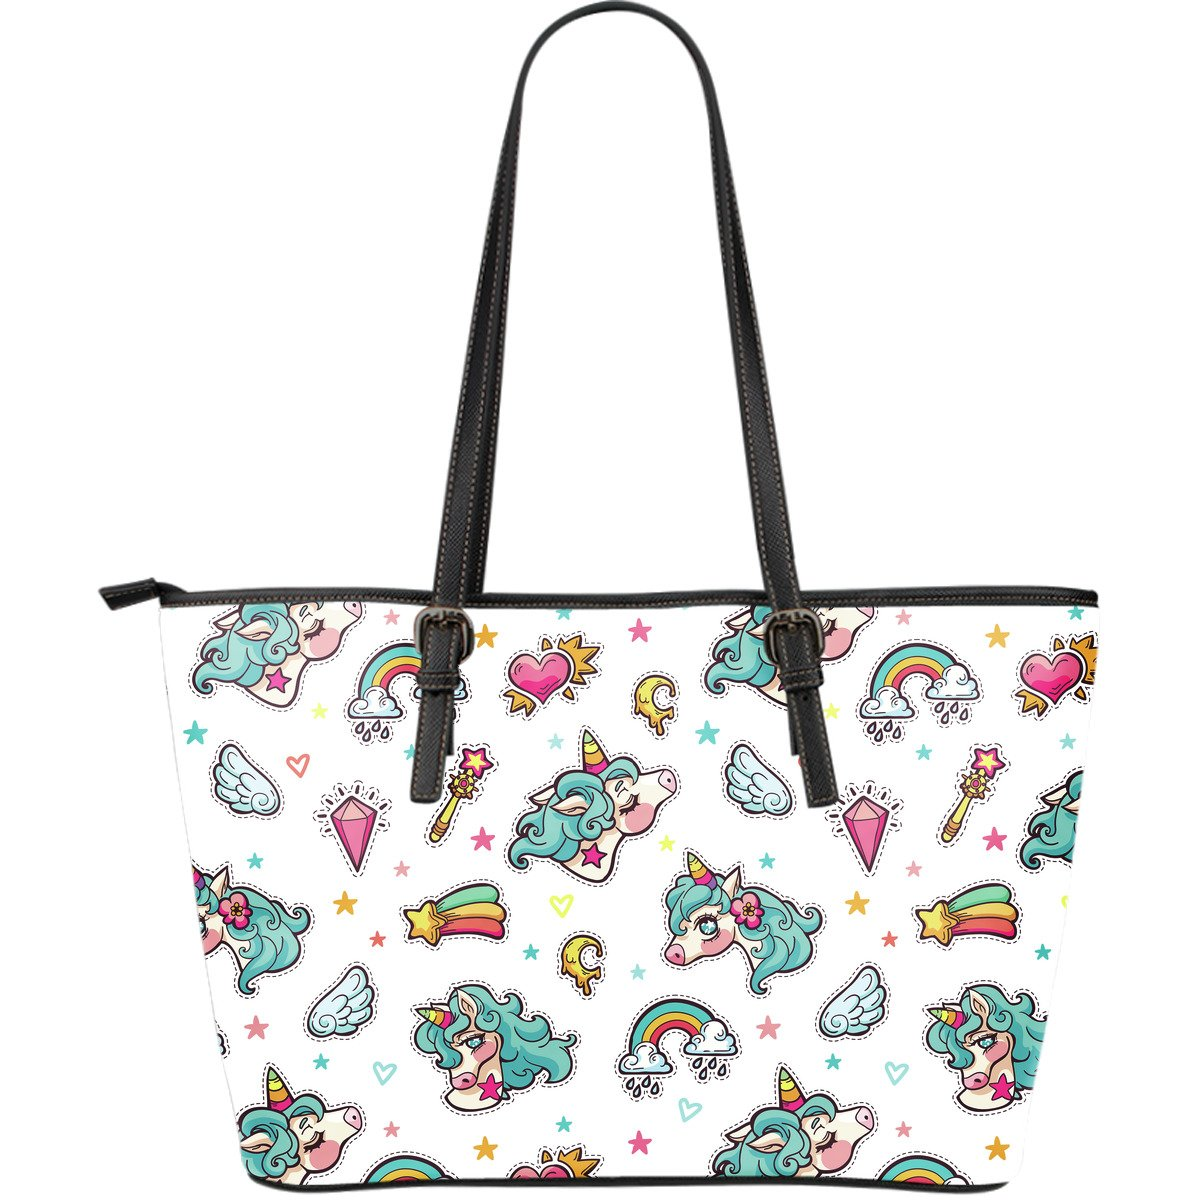 Little Girly Unicorn Pattern Print Leather Tote Bag GearFrost